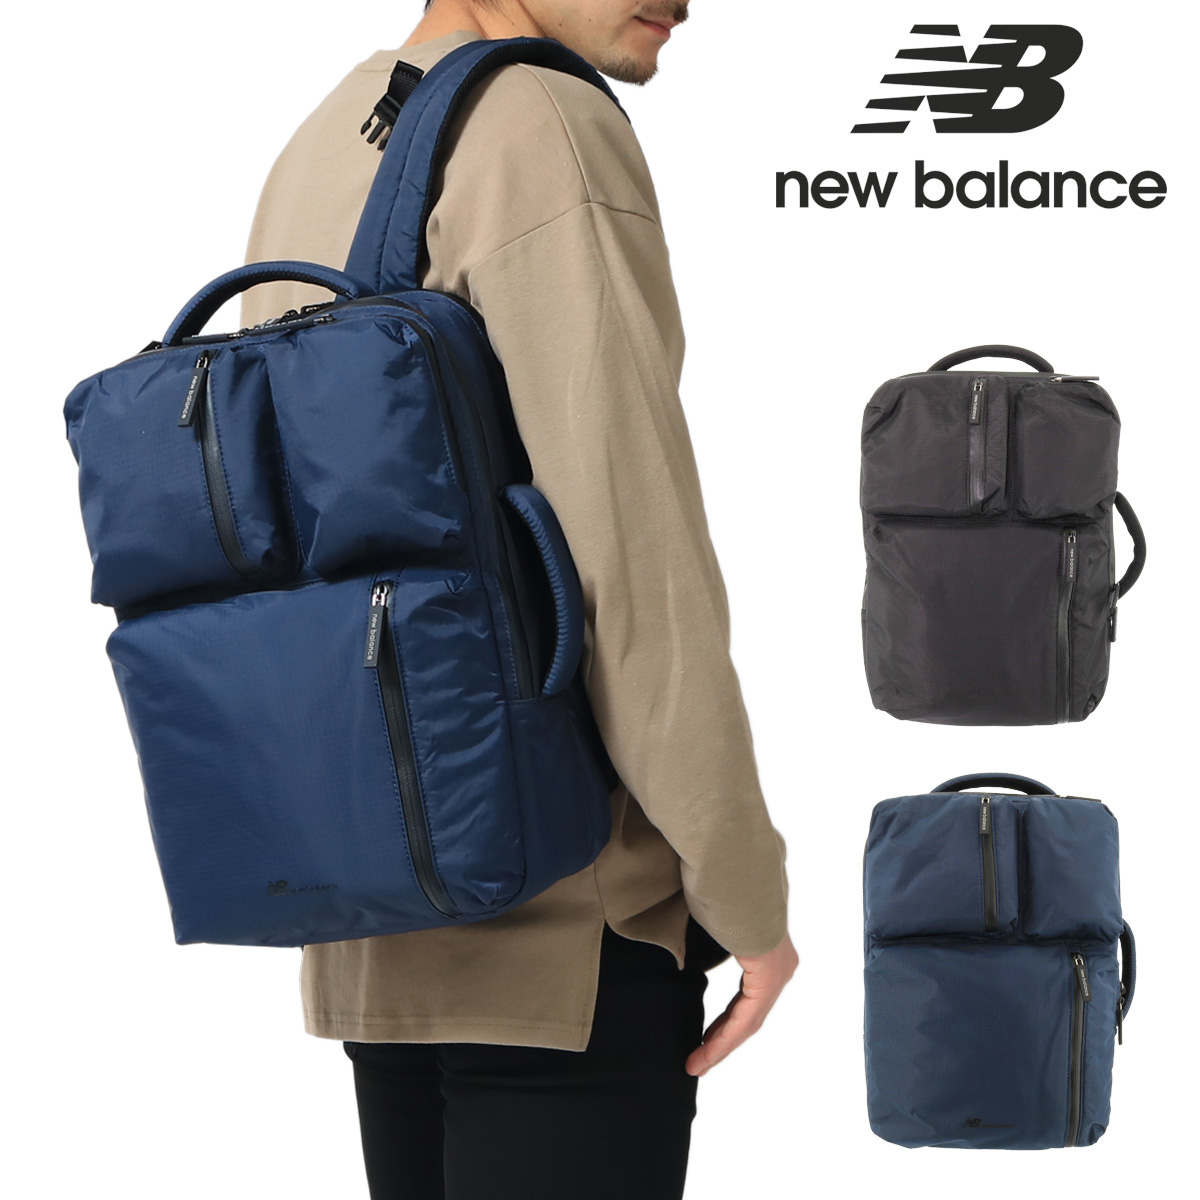 12100006 New Balance rucksack 2WAY A4 men New Balance | I send it out on our limited comment model briefcase business rucksack backpack large capacity